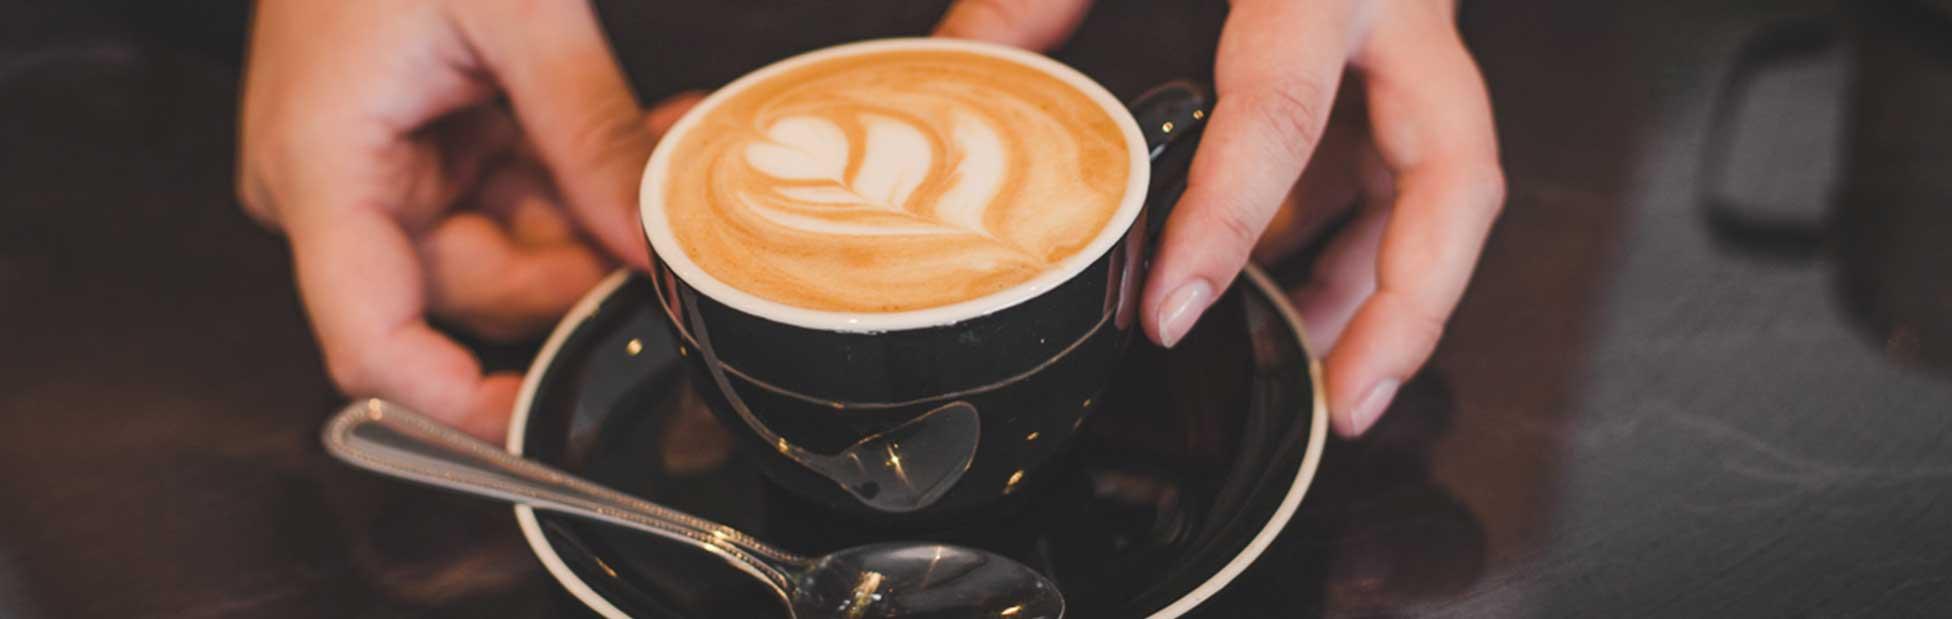 Image of a coffee